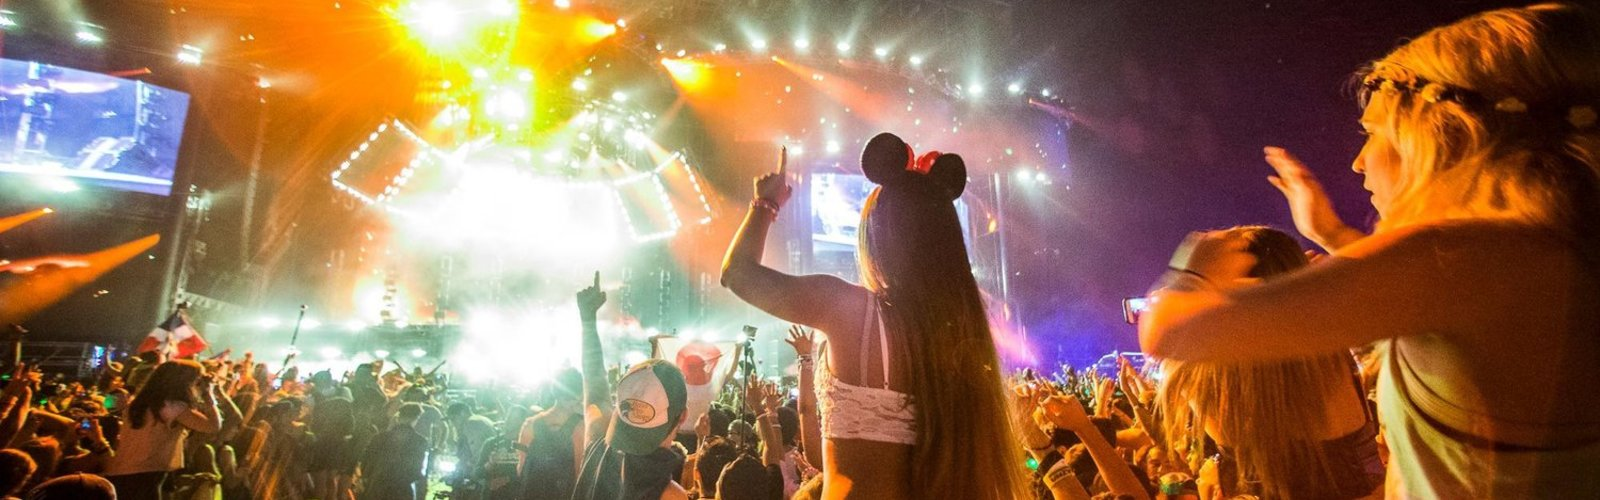 Why Keeping All Music Festivals in One Place Keeps You Healthy